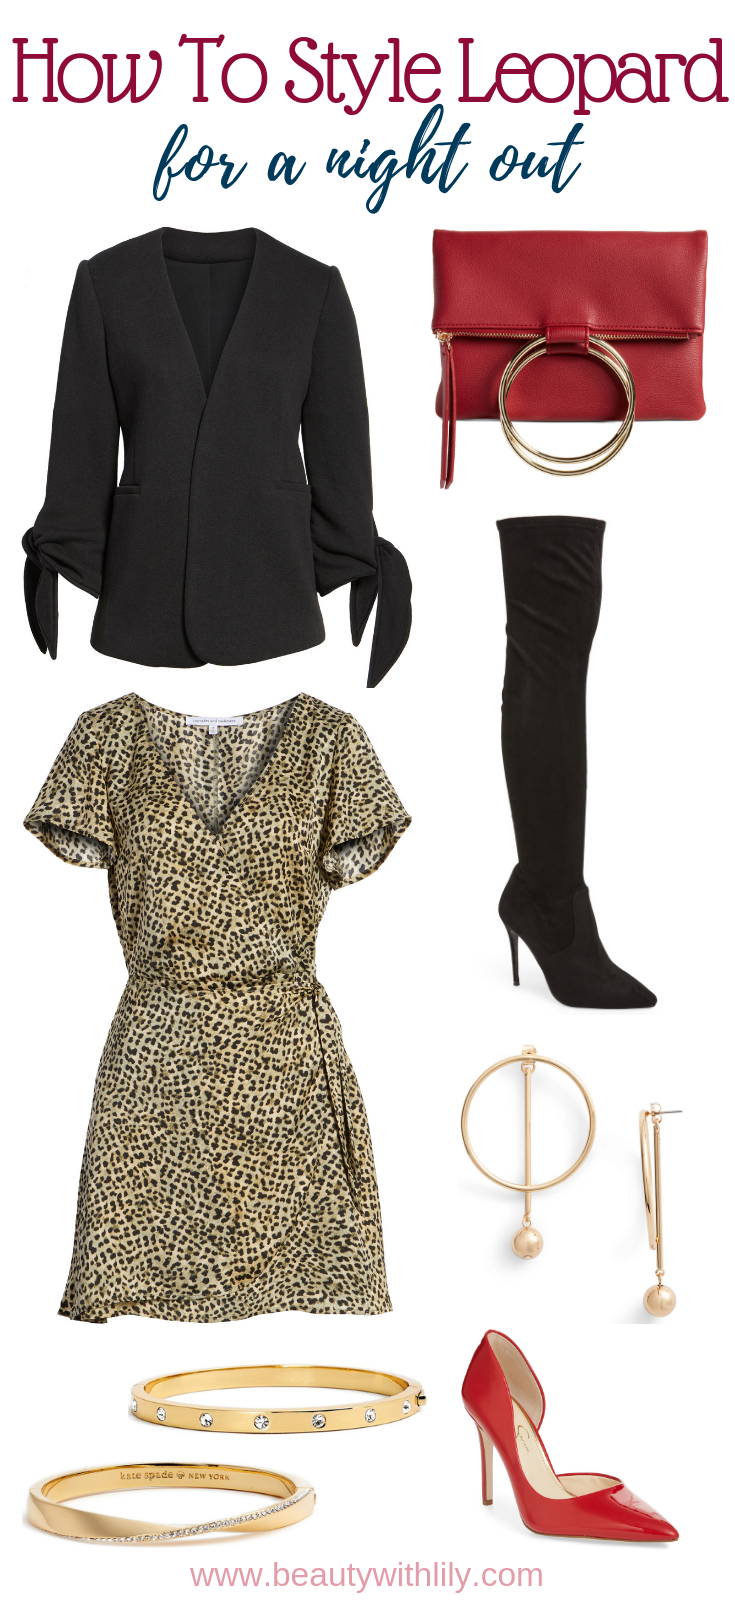 Leopard Print Outfit Ideas // Night Out Outfit // Party Outfit // How To Style Leopard Print // Fall Outfit Ideas // Fall Fashion   Beauty With Lily